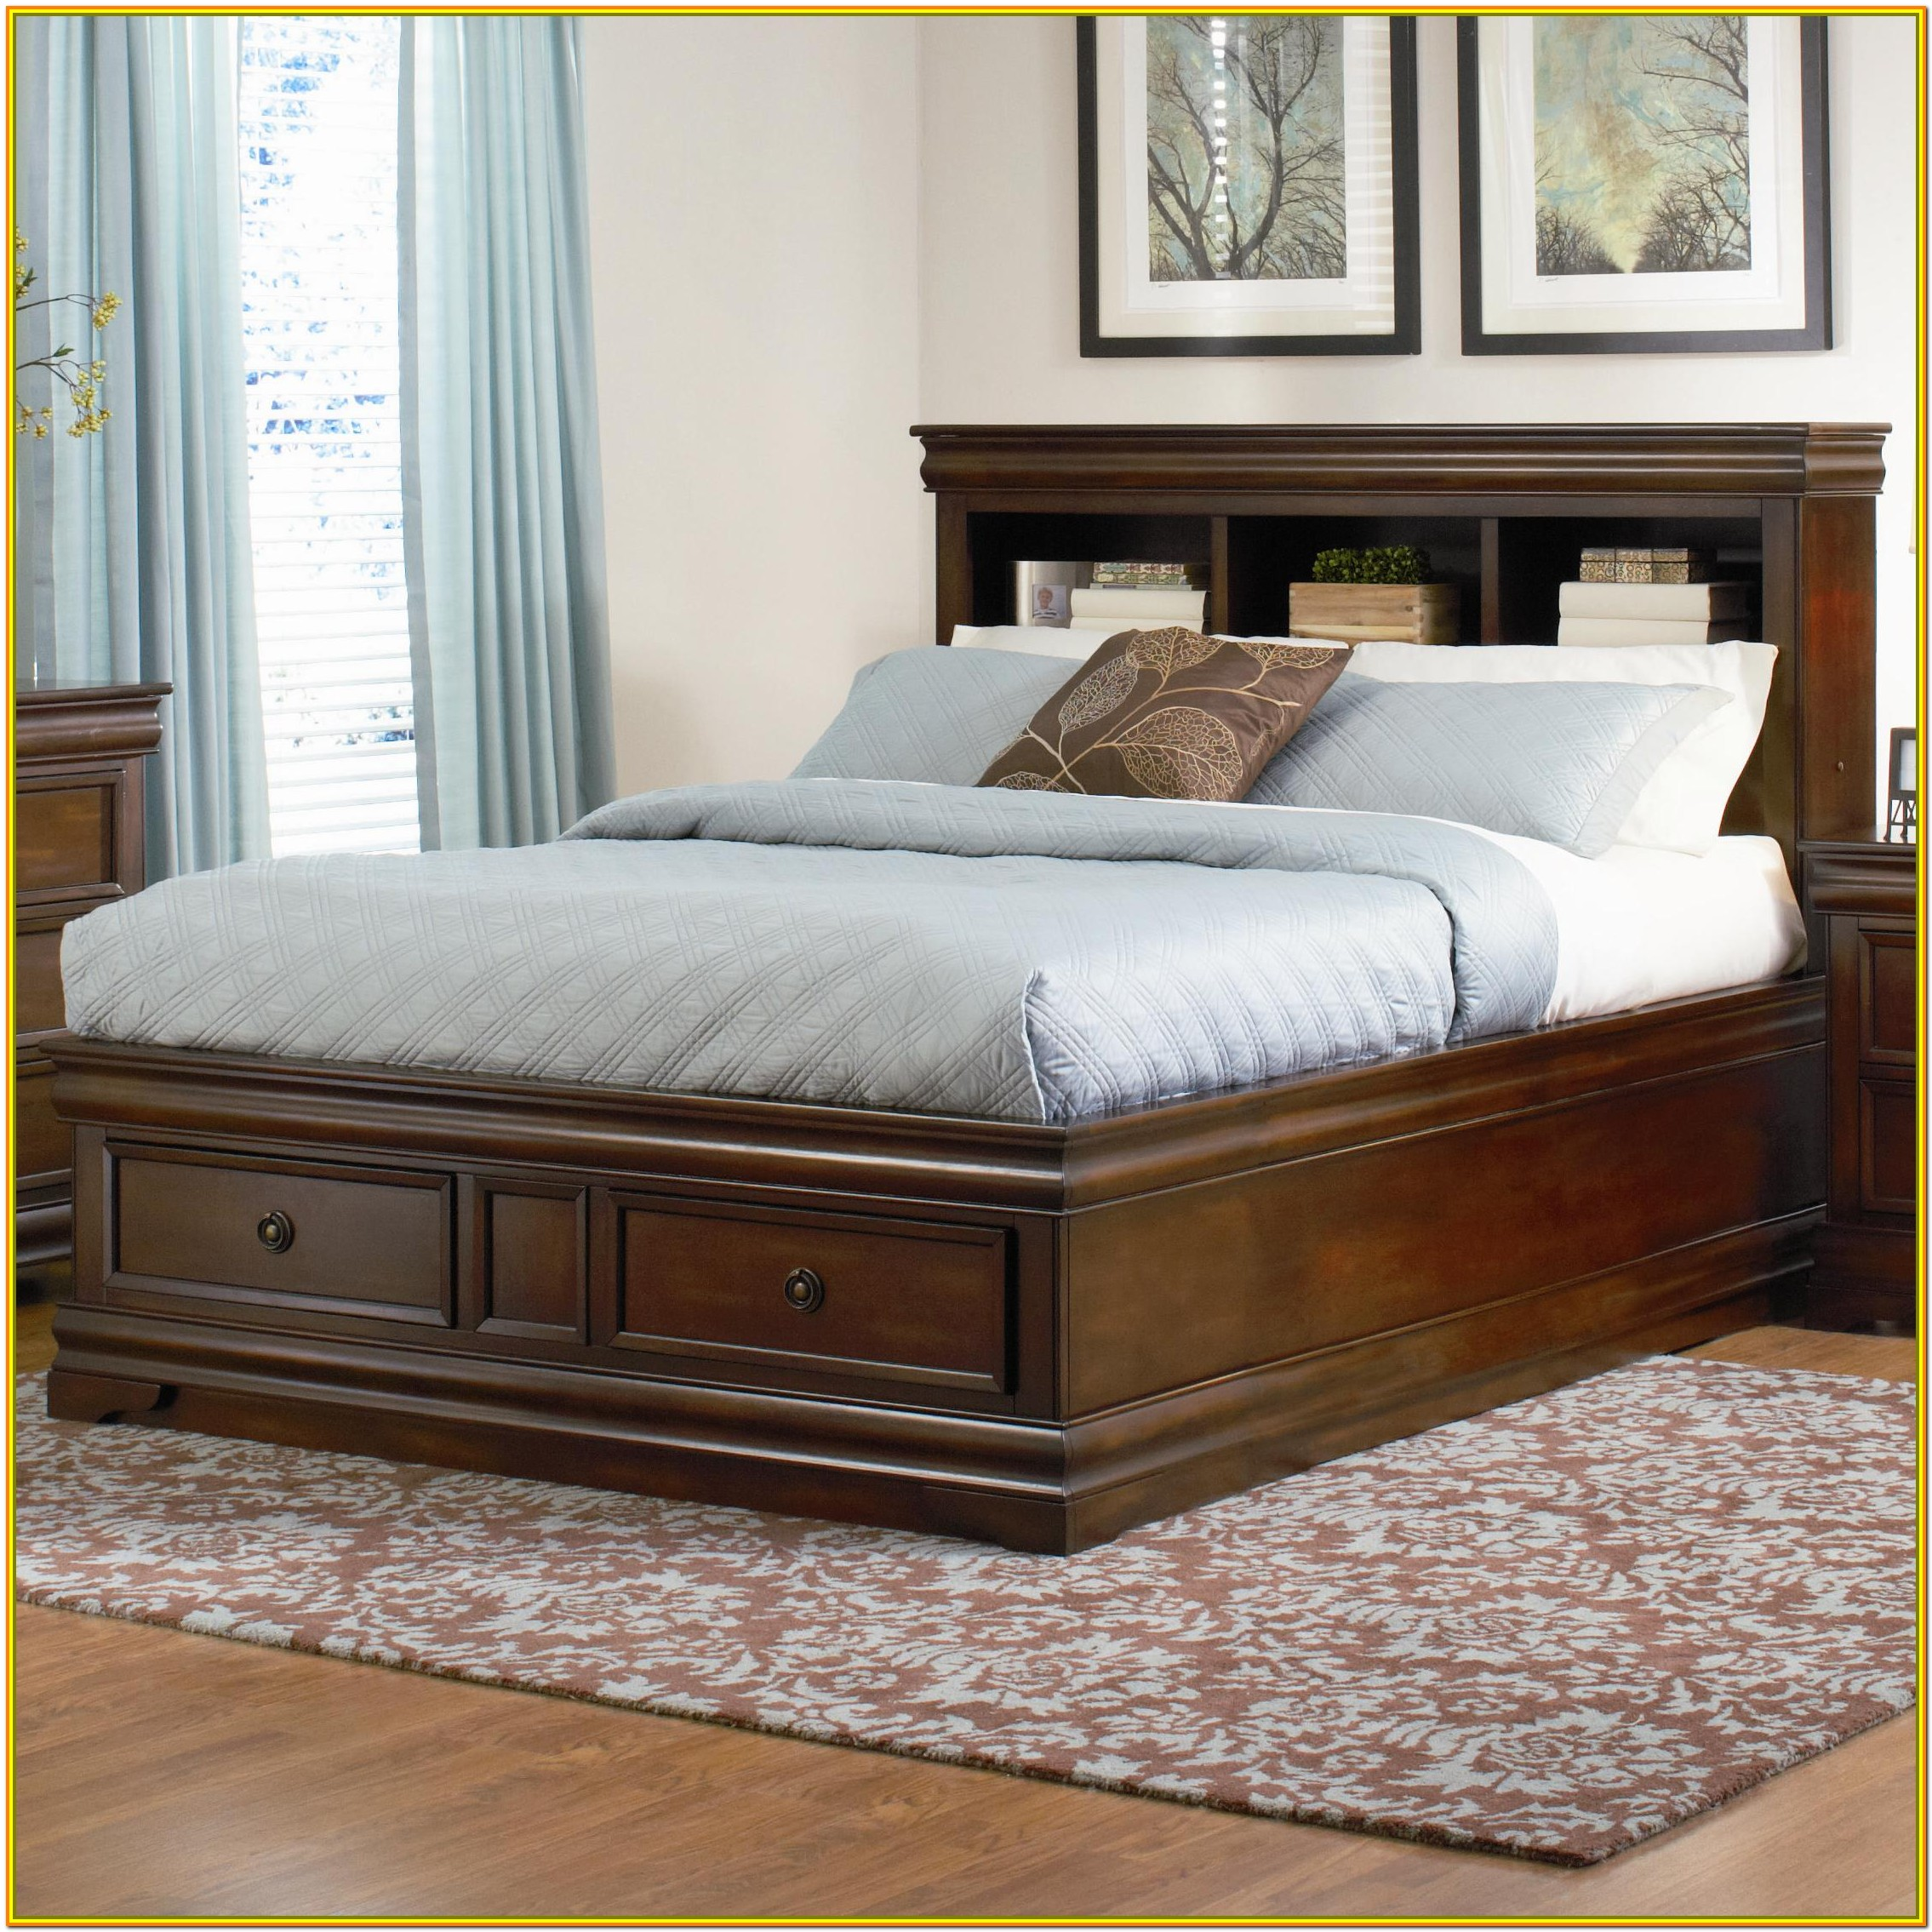 King Size Bed With Storage Olx Bedroom Home Decorating